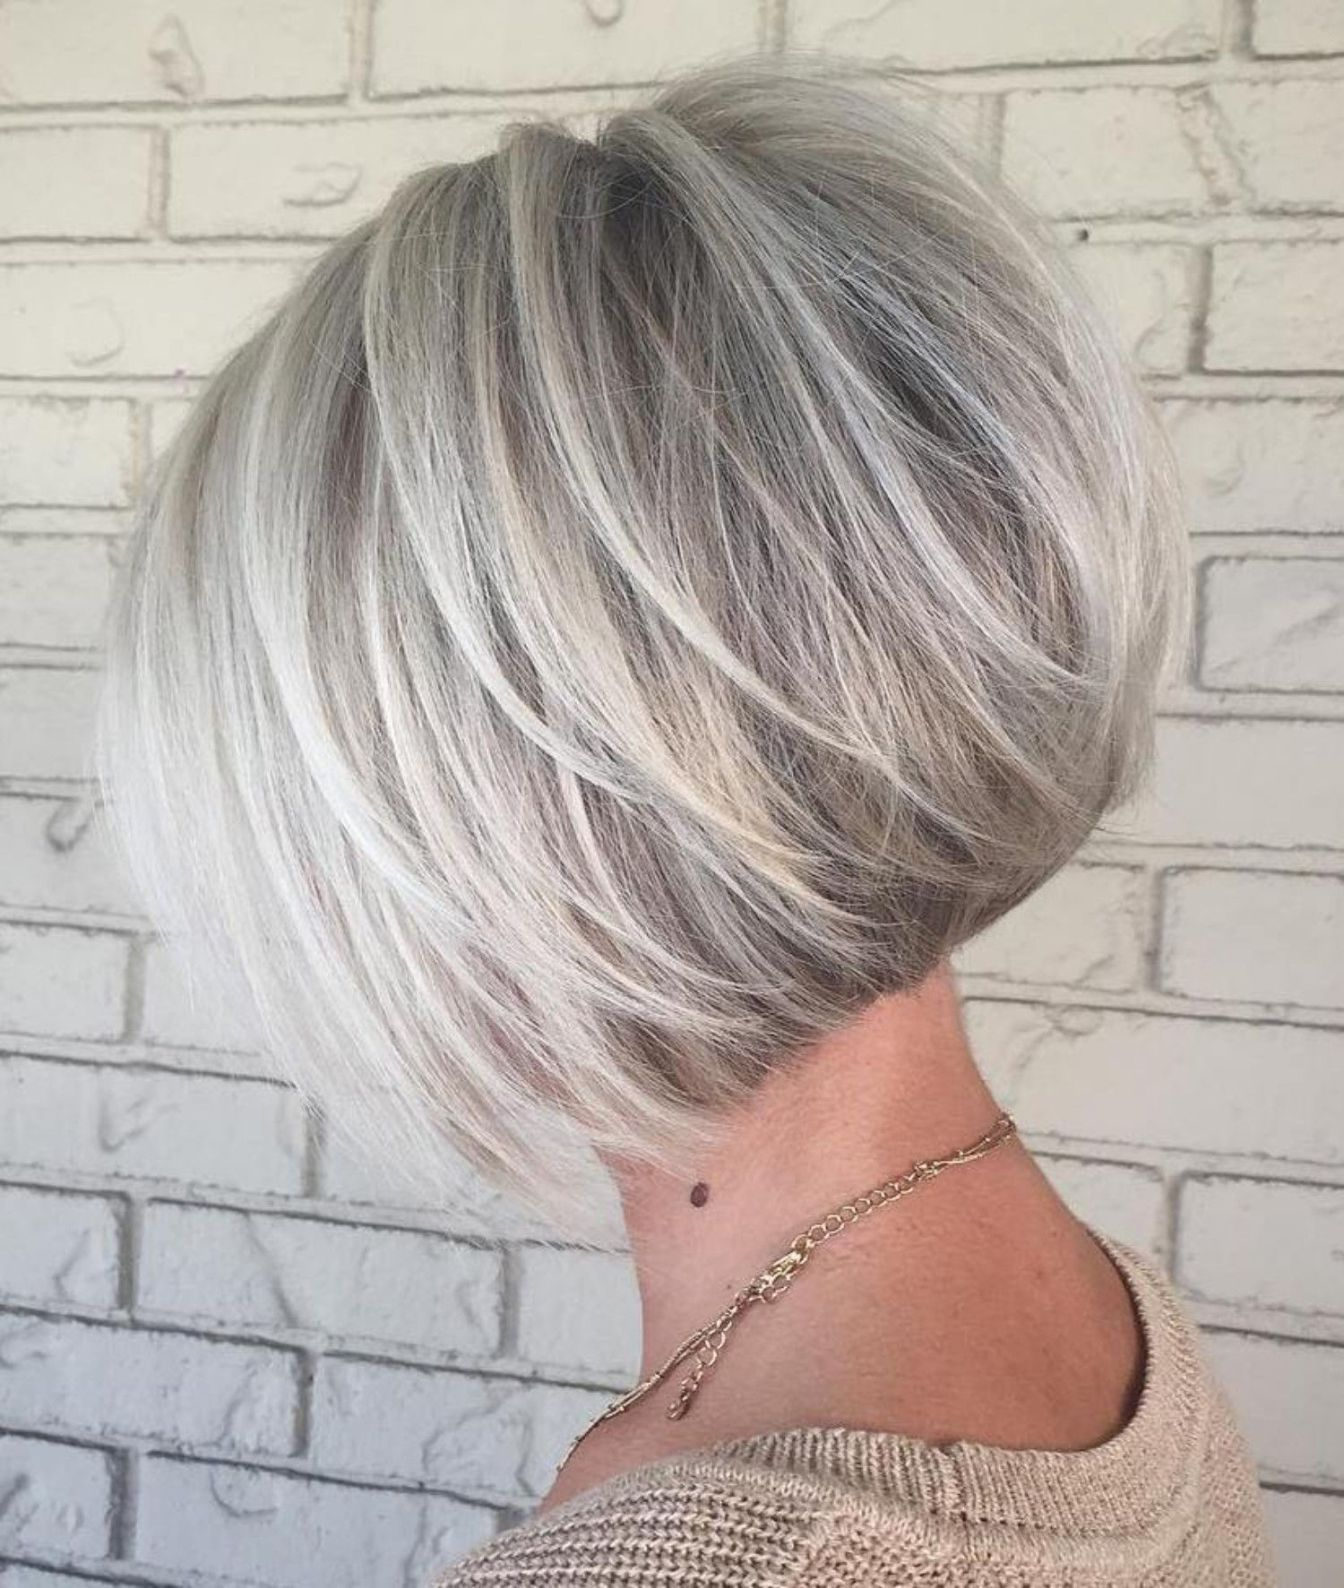 100 Mind Blowing Short Hairstyles For Fine Hair Short Hair With